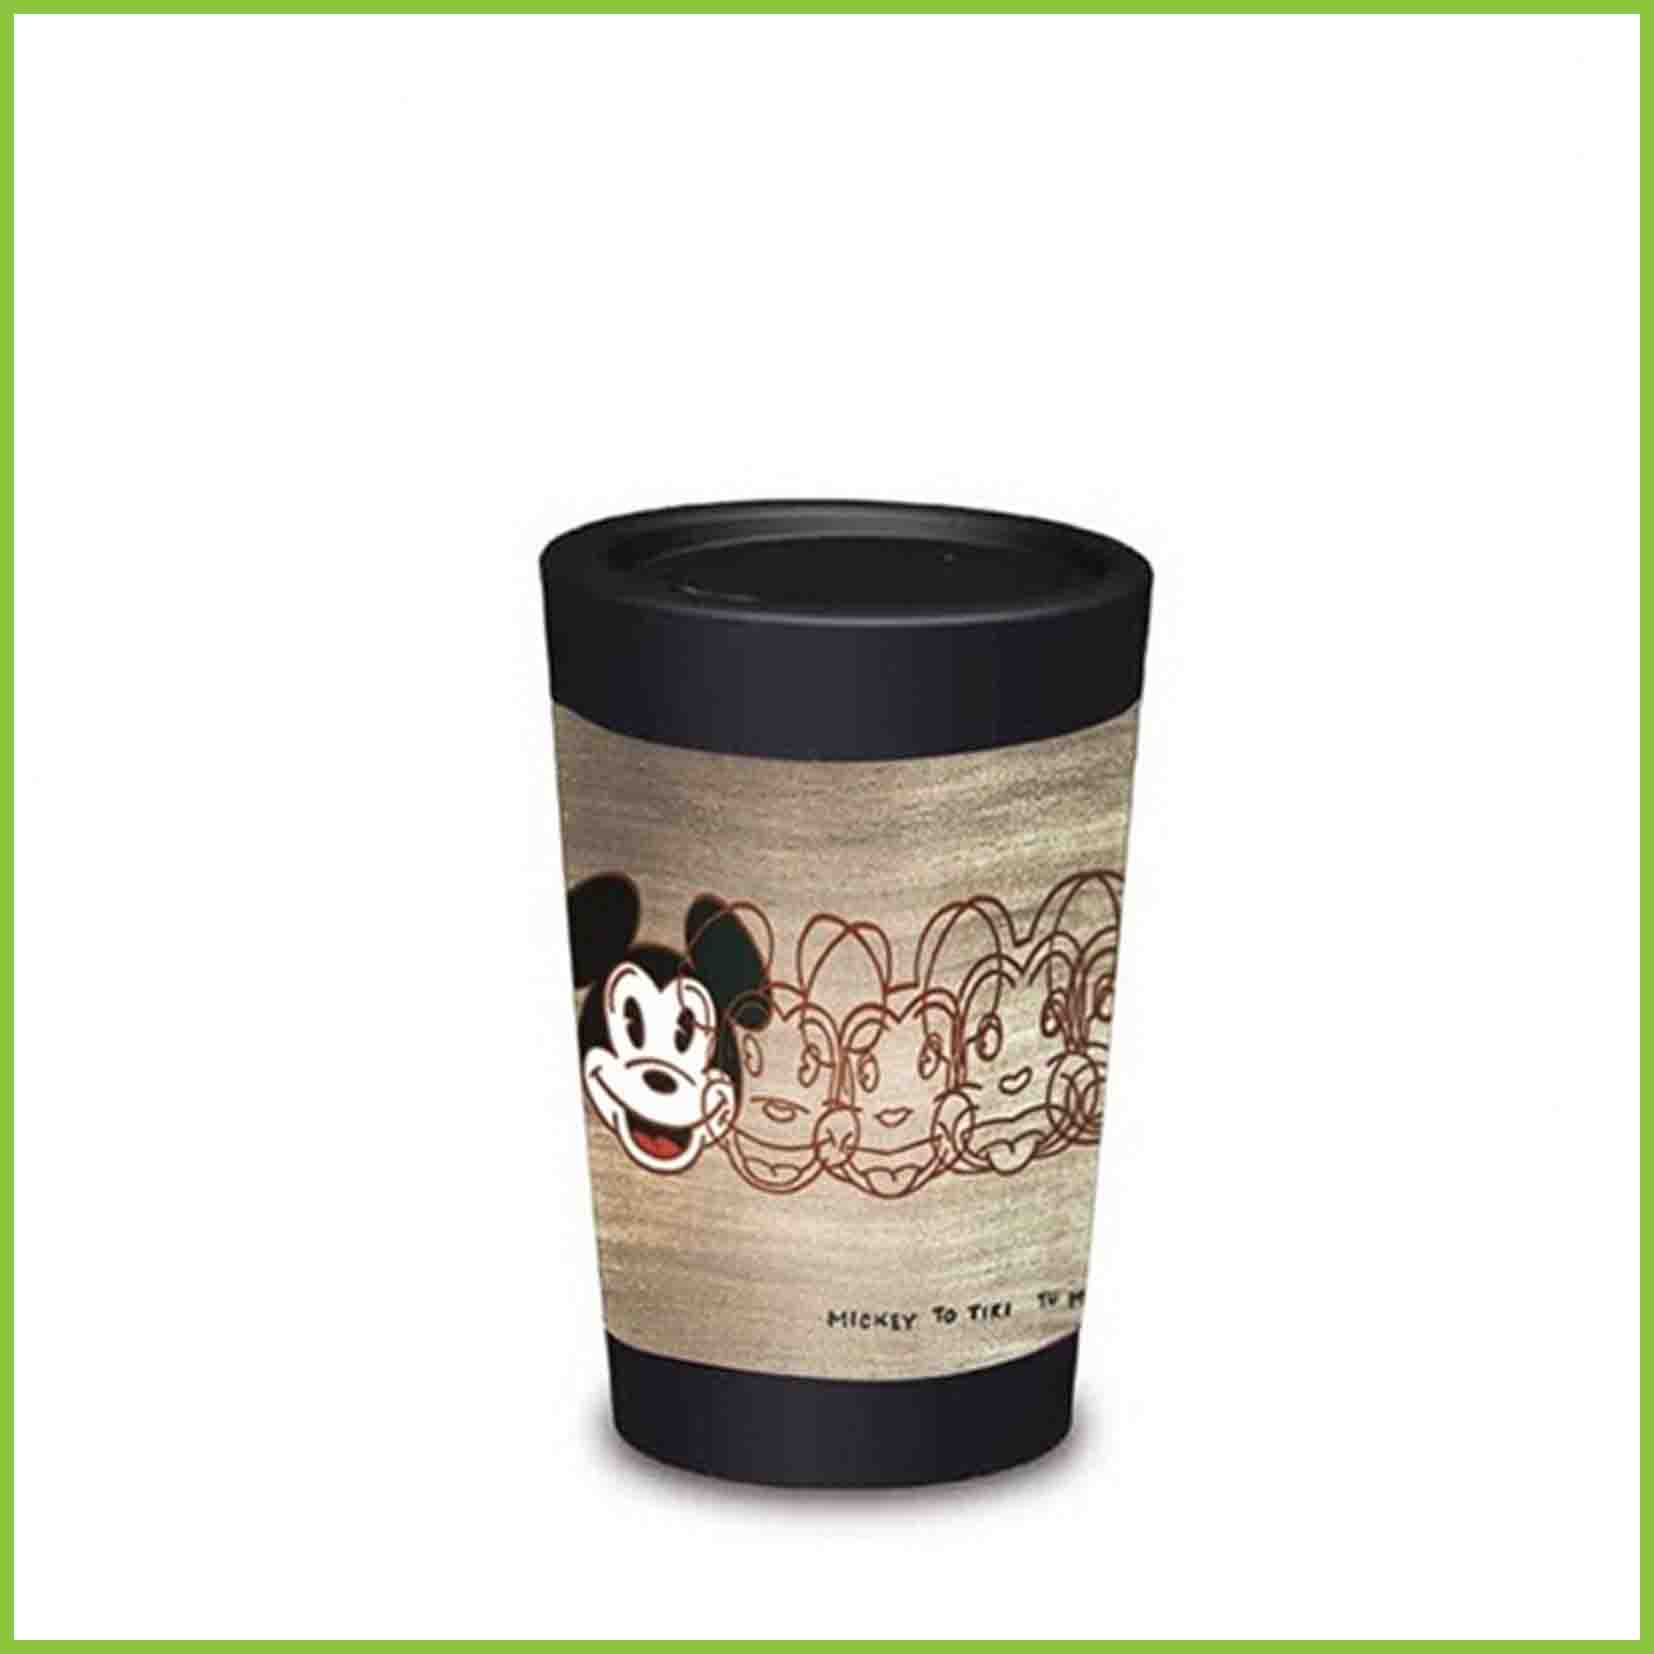 A lightweight reusable cup from CuppaCoffeeCup with a Mickey to Tiki design.